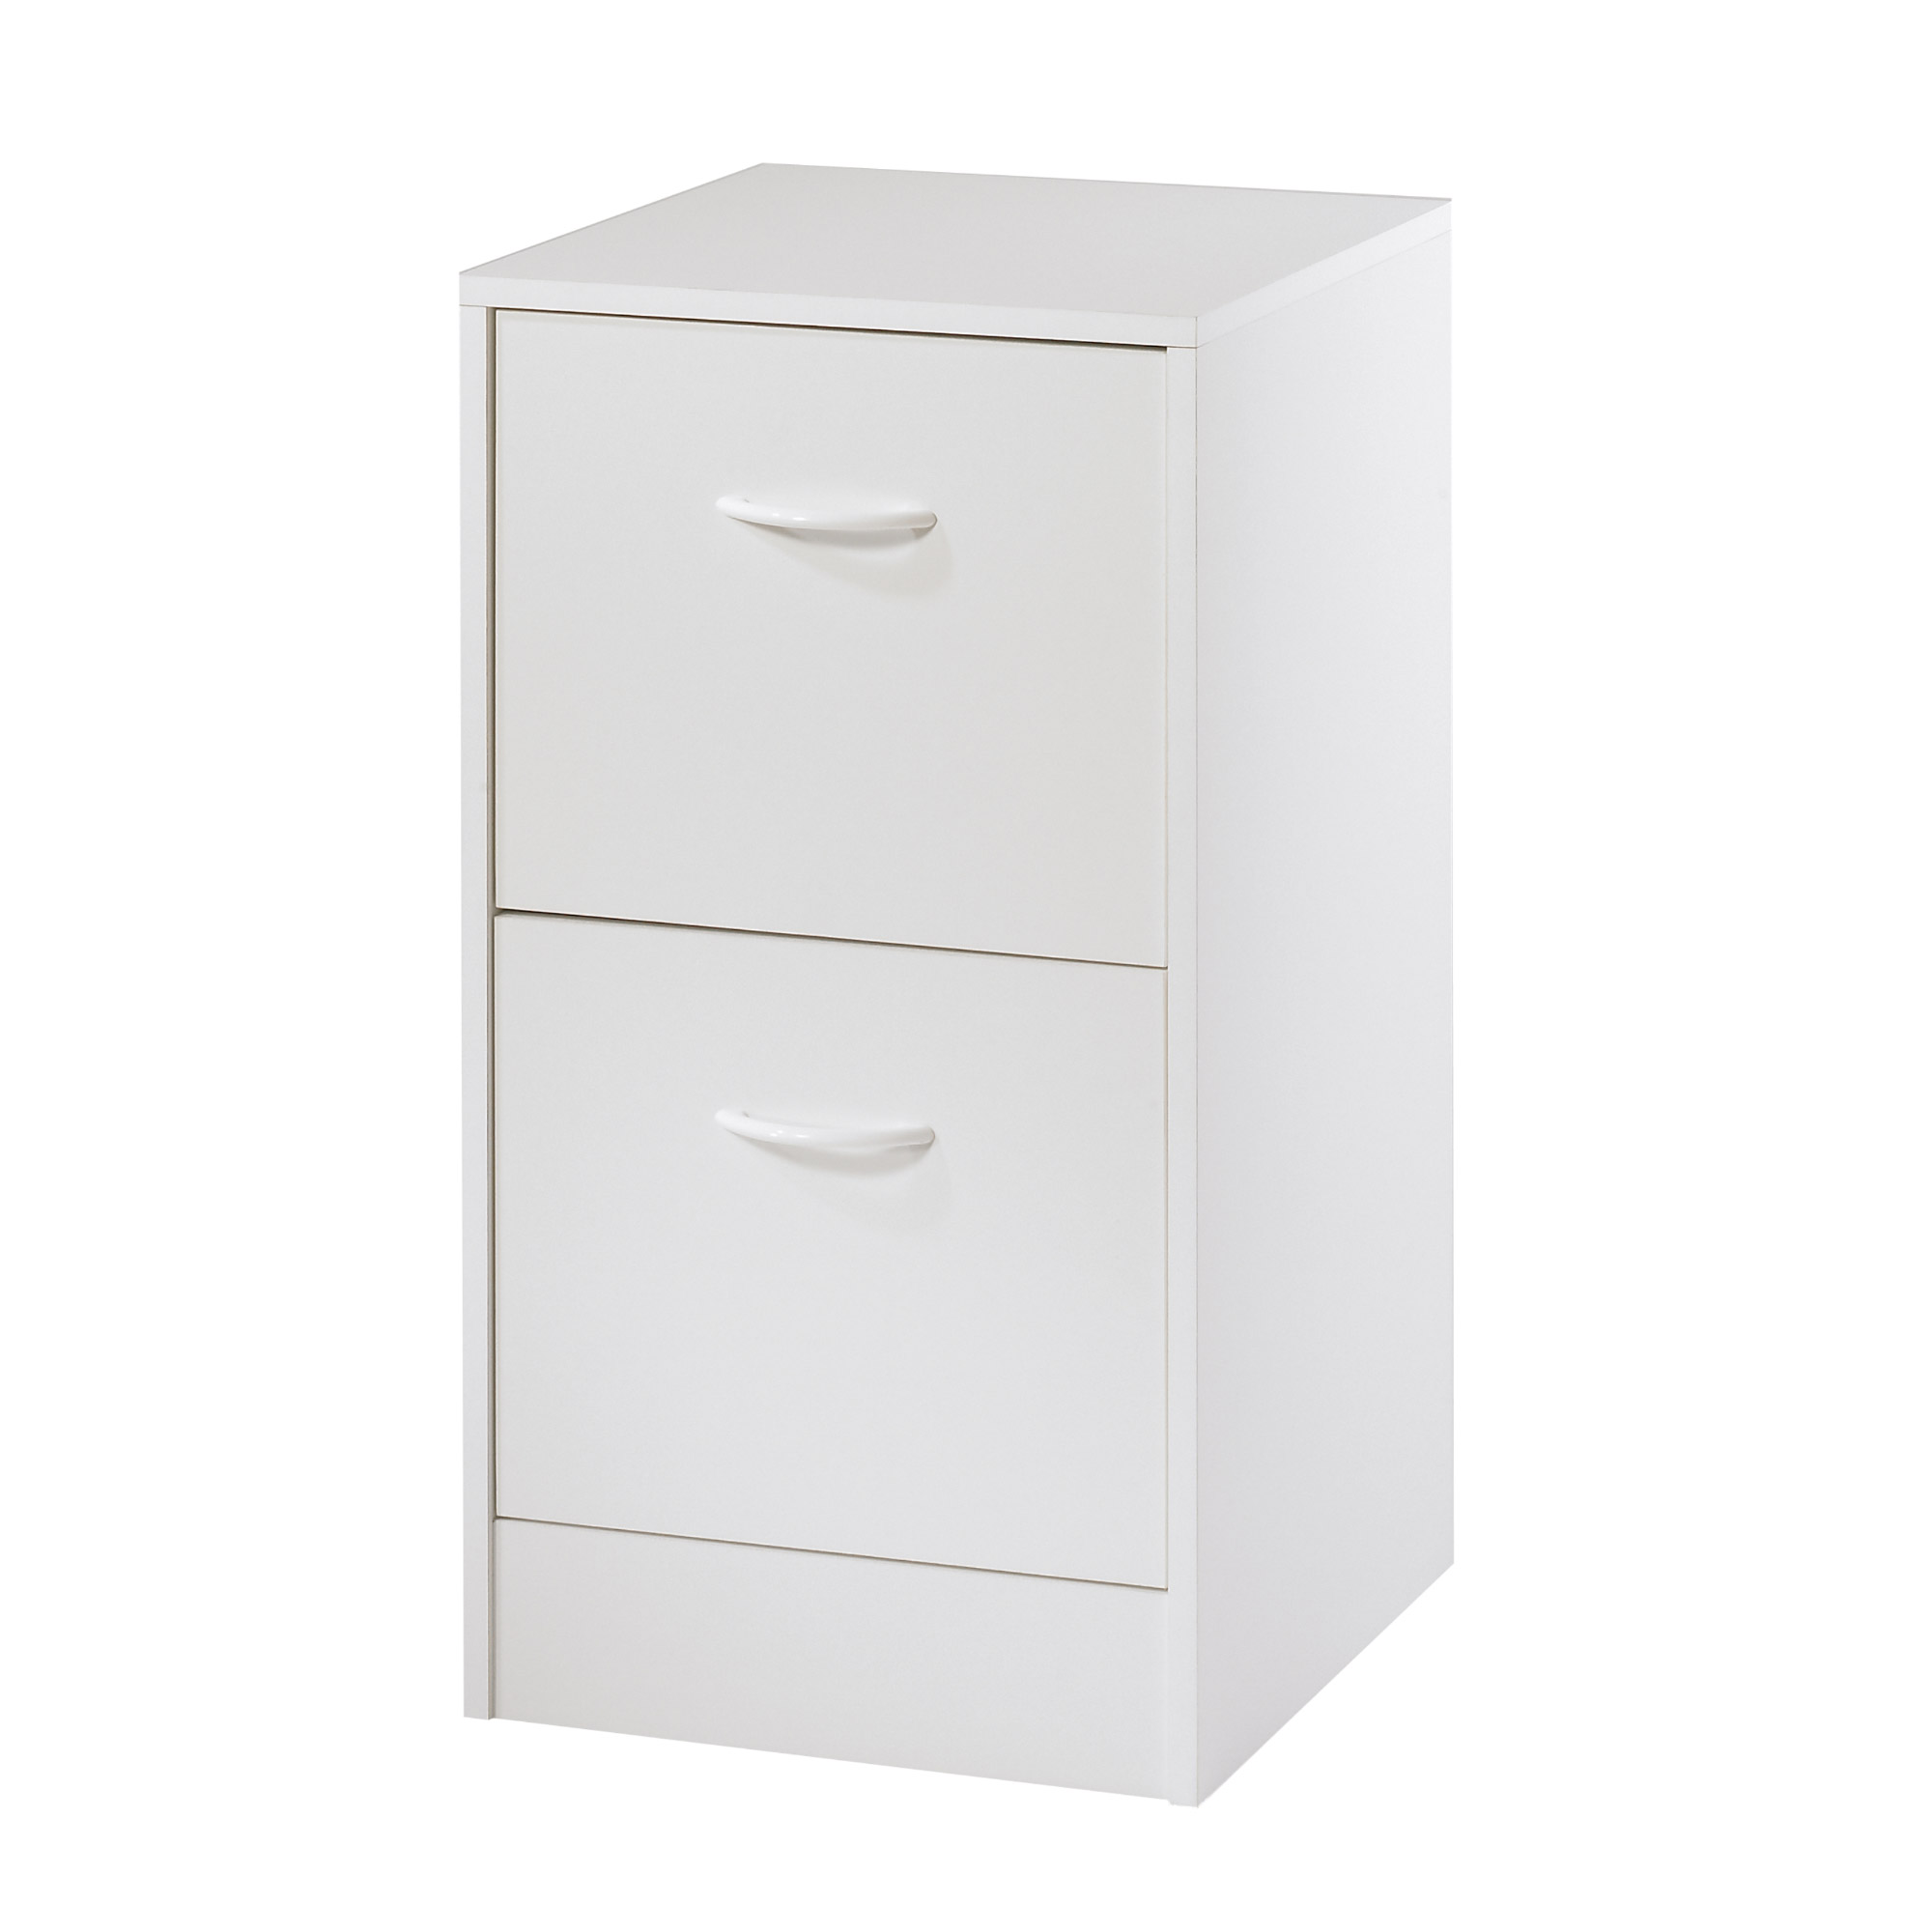 Meuble blanc laqu conforama simple meuble tv portes niche - Caisson bureau conforama ...